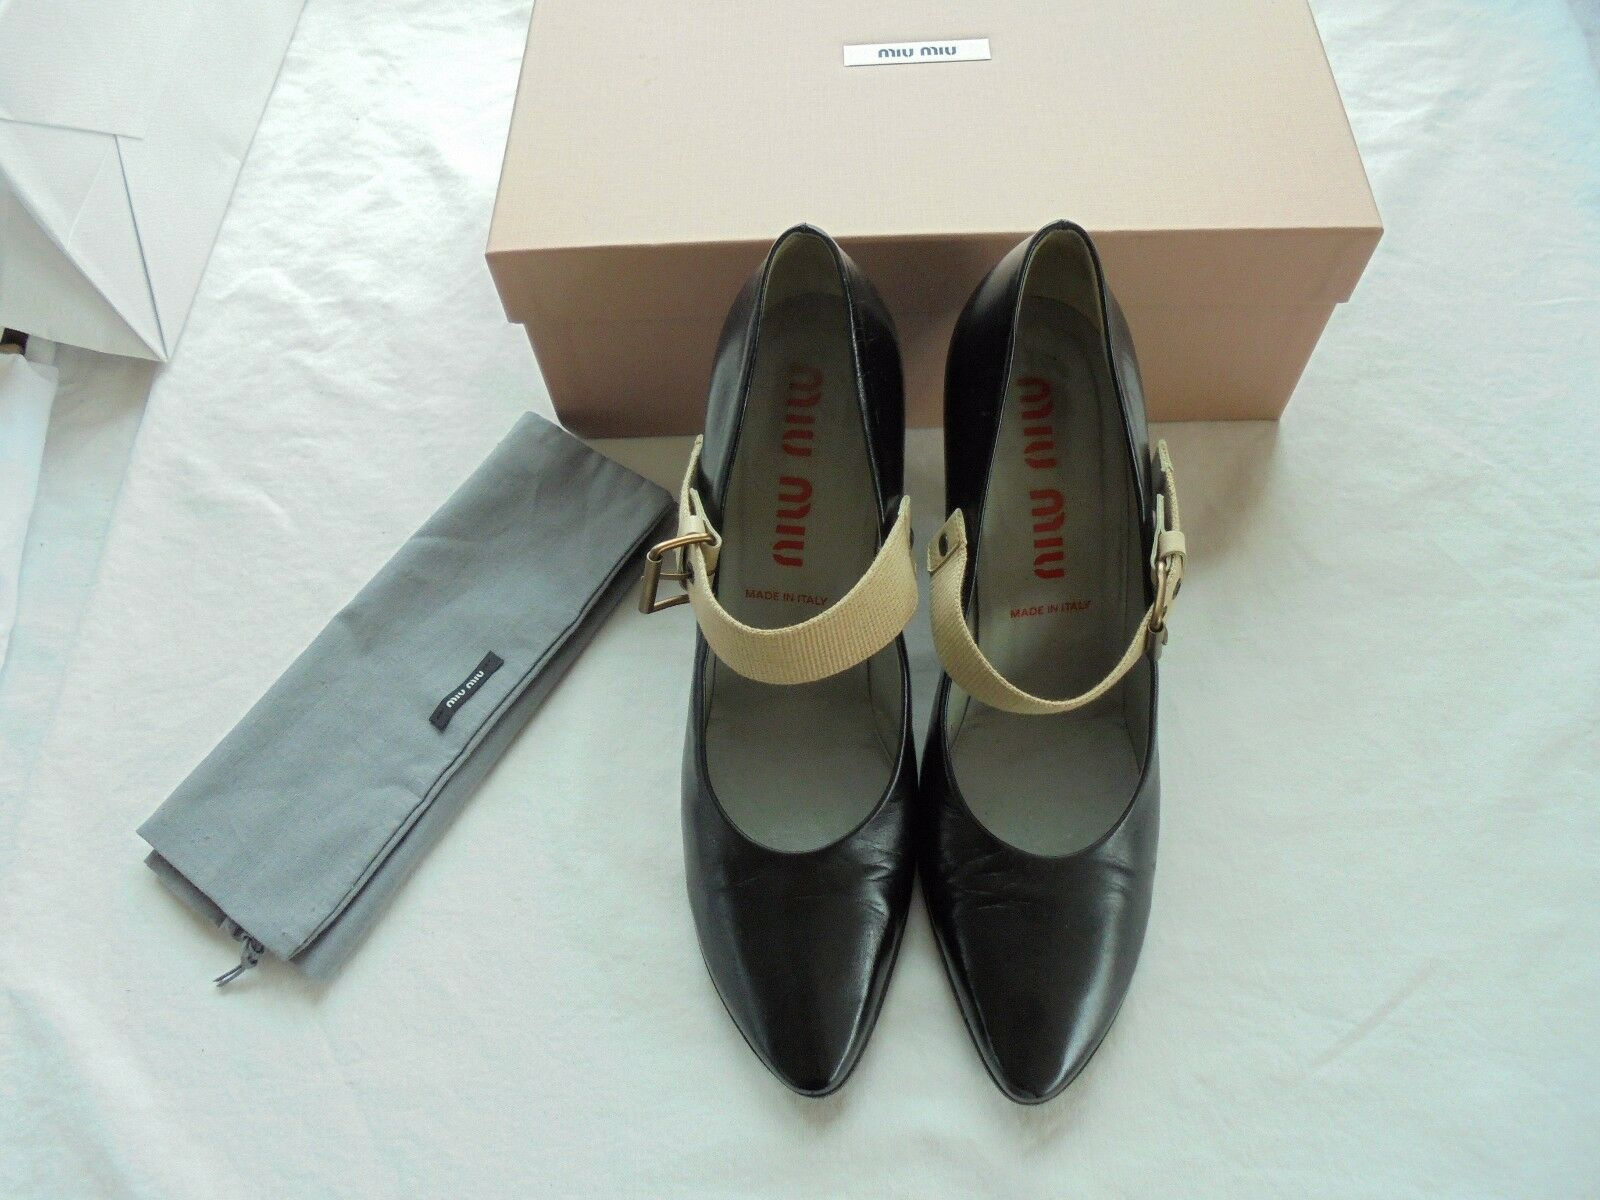 Miu Miu by  Prada Leder Pumps NP:  by w NEU Luxus High Heels Schuhe Gr. 39 271b08